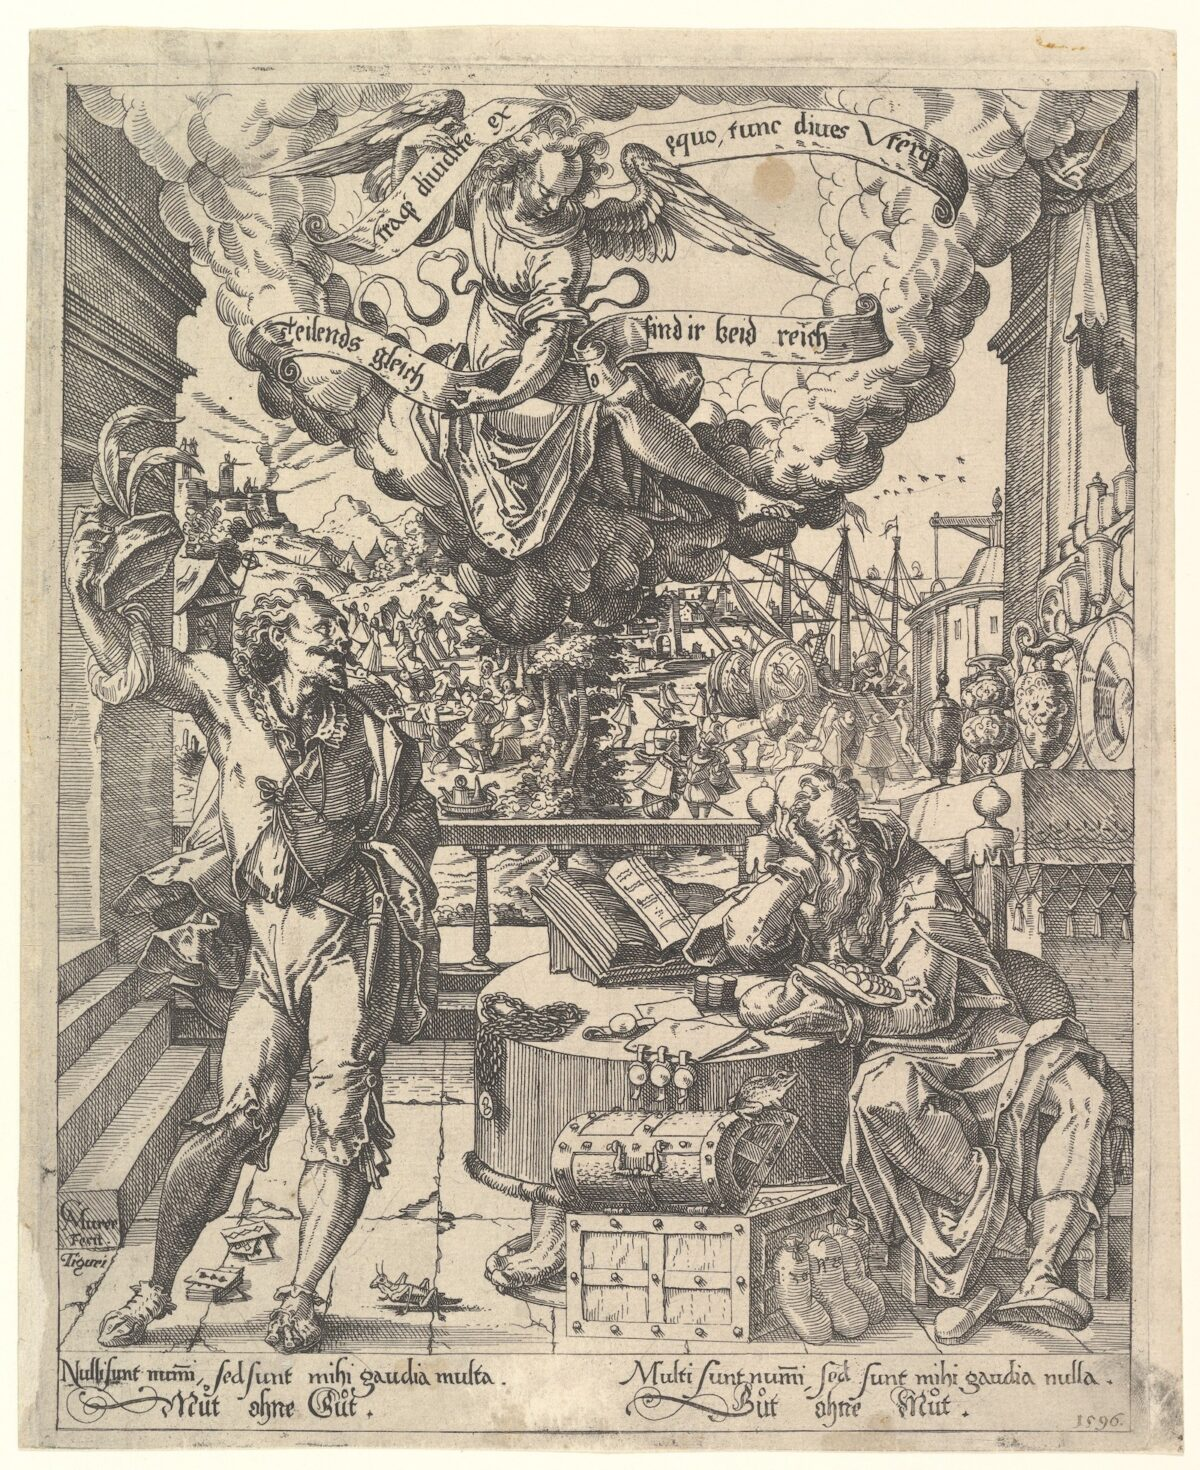 A sixteenth century etching depicting allegorical representations of wealth and poverty.